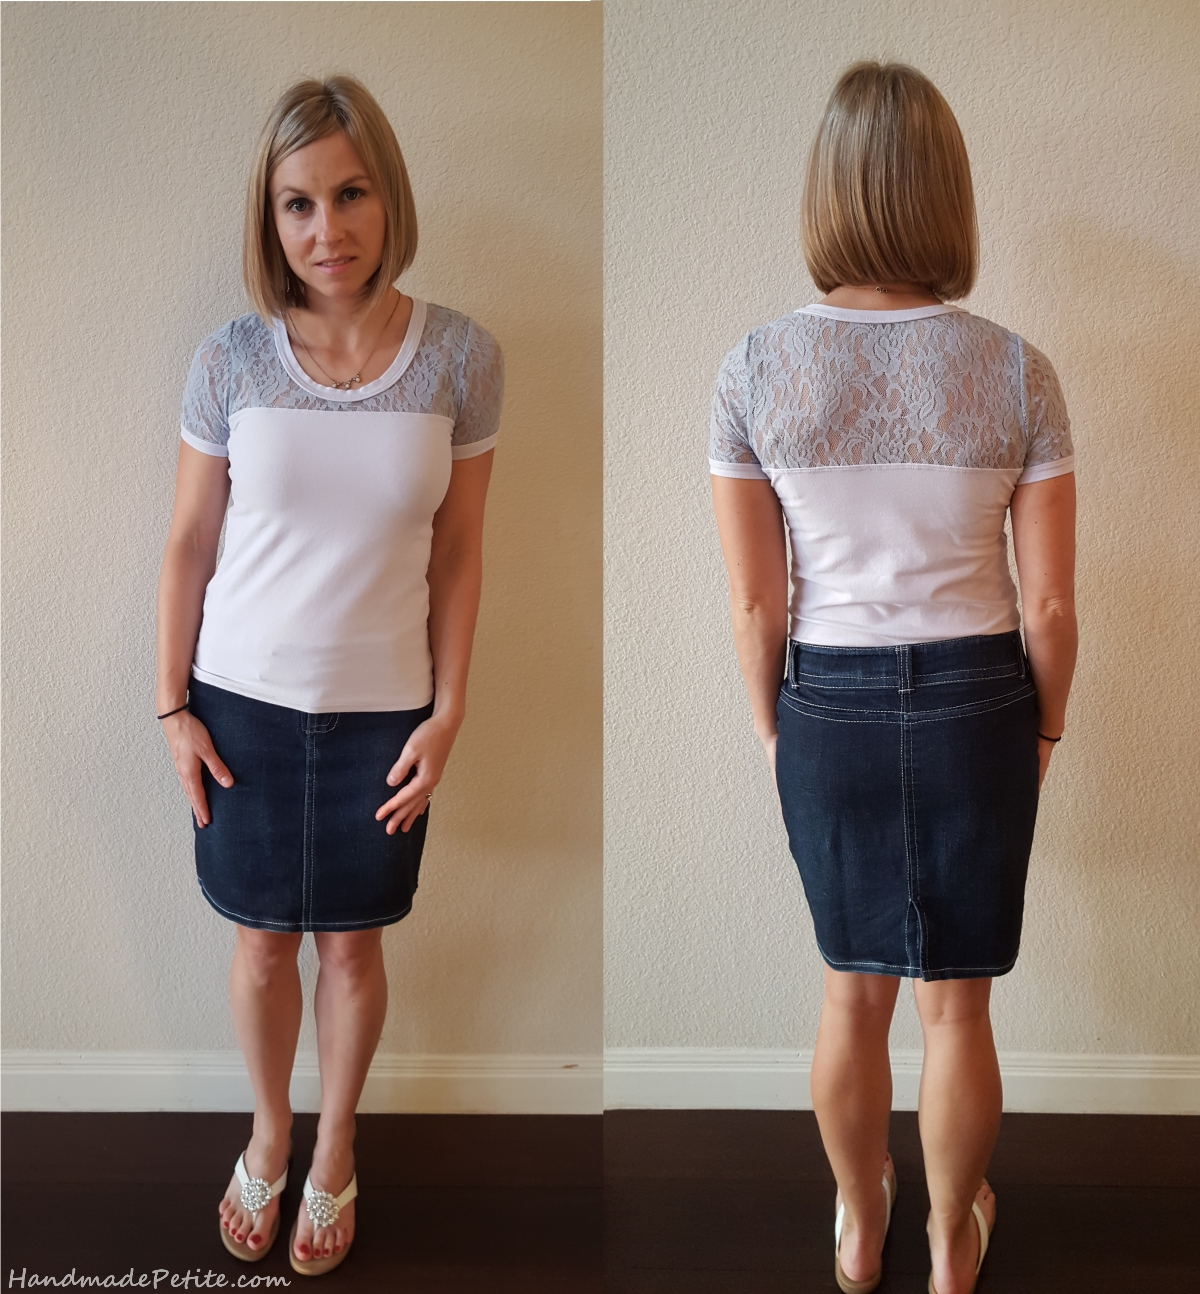 Handmade denim skirt and basic tee with added lace